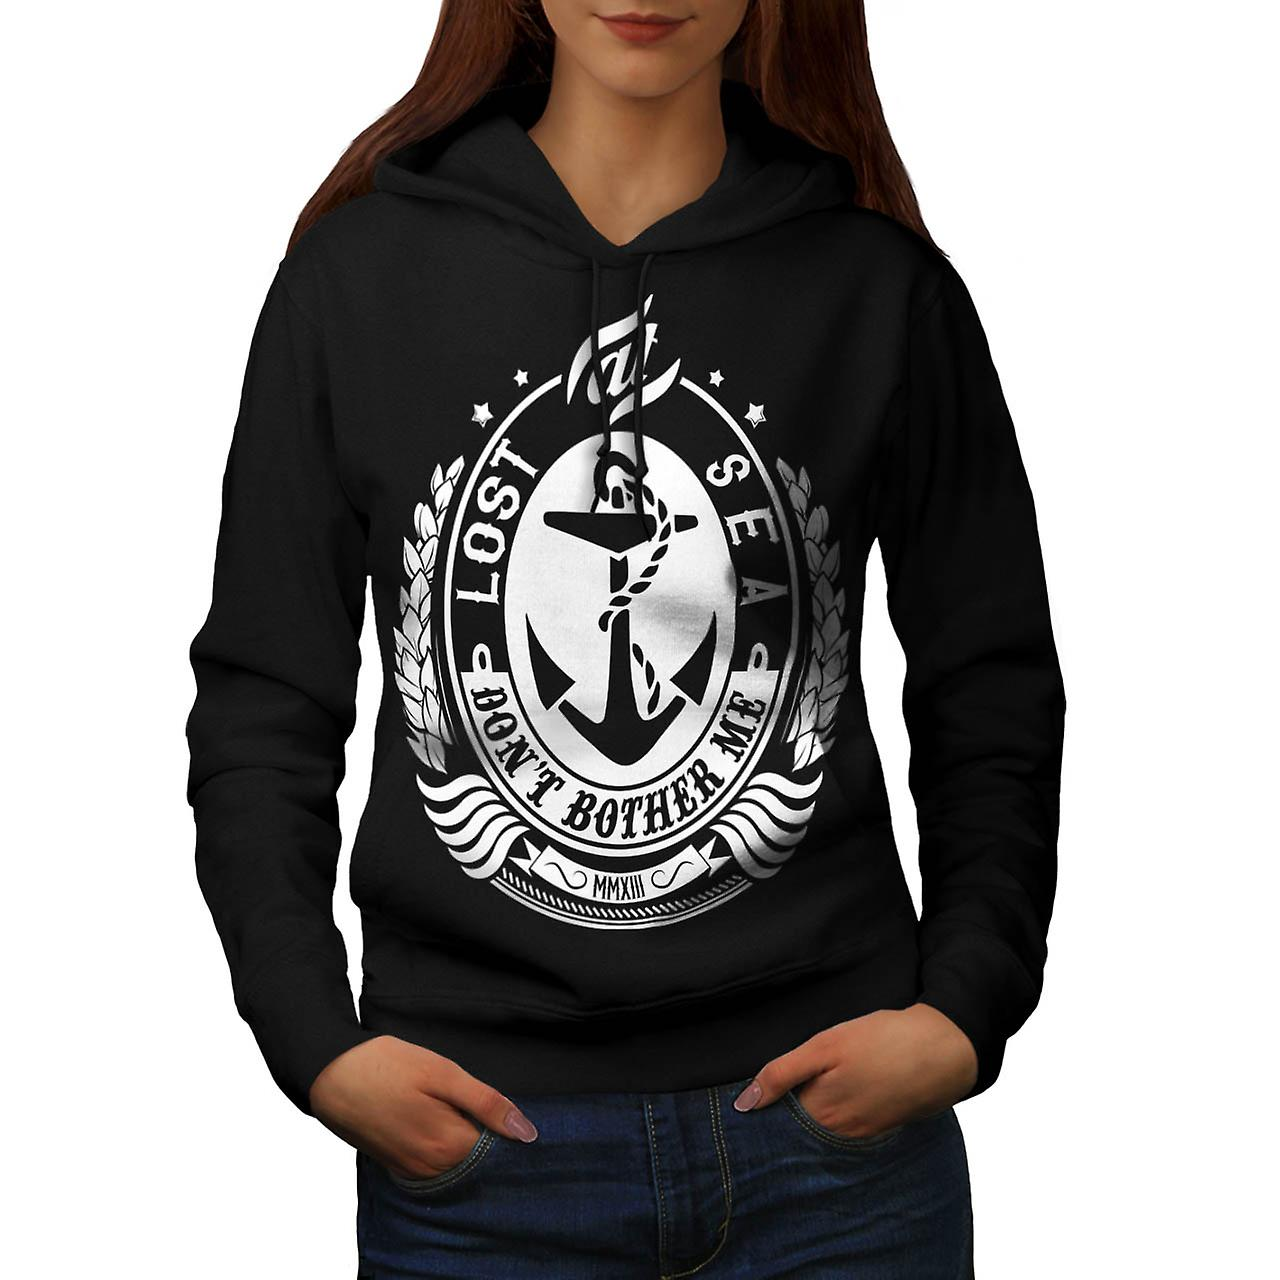 Lost At Sea Boat Ship Bother Me Women Black Hoodie | Wellcoda